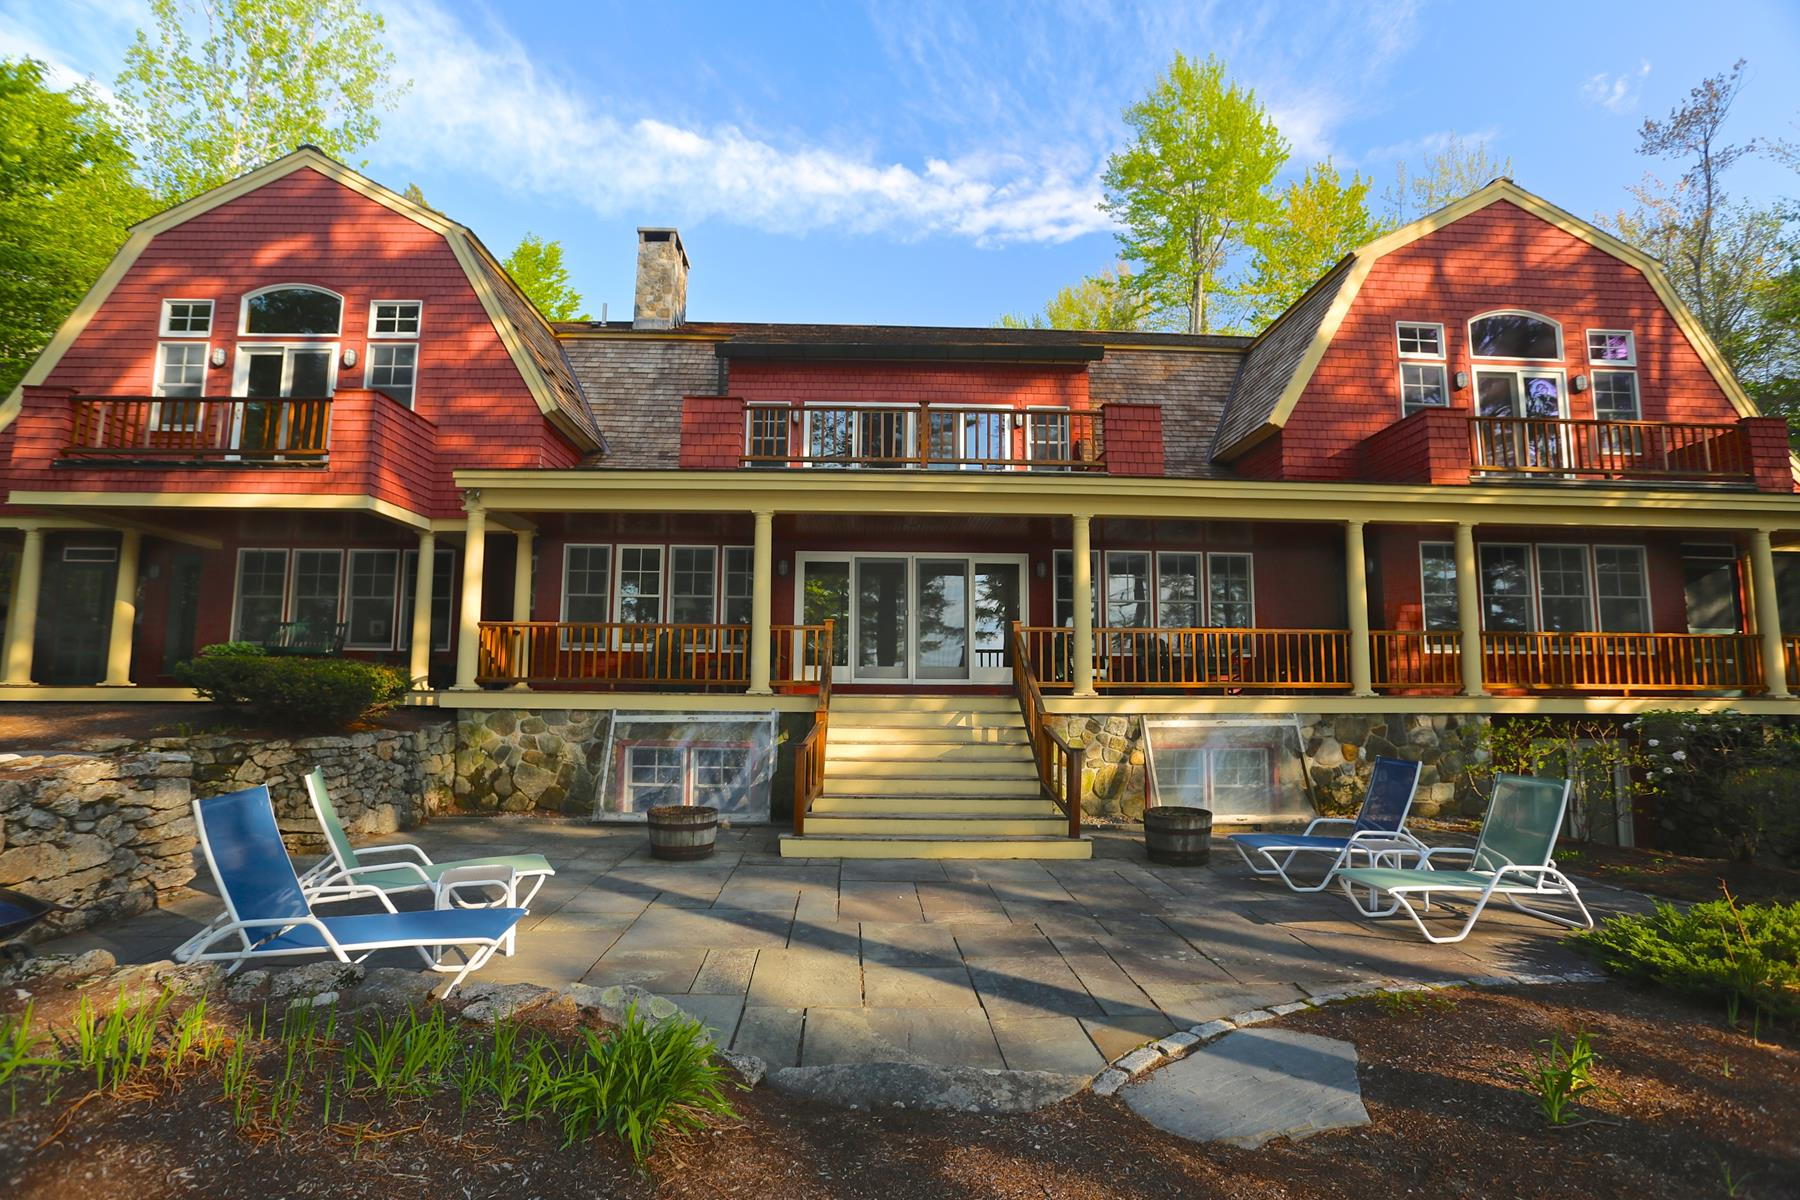 Single Family Home for Sale at 206 Bowles Road, Newbury 206 Bowles Rd Newbury, New Hampshire, 03255 United States